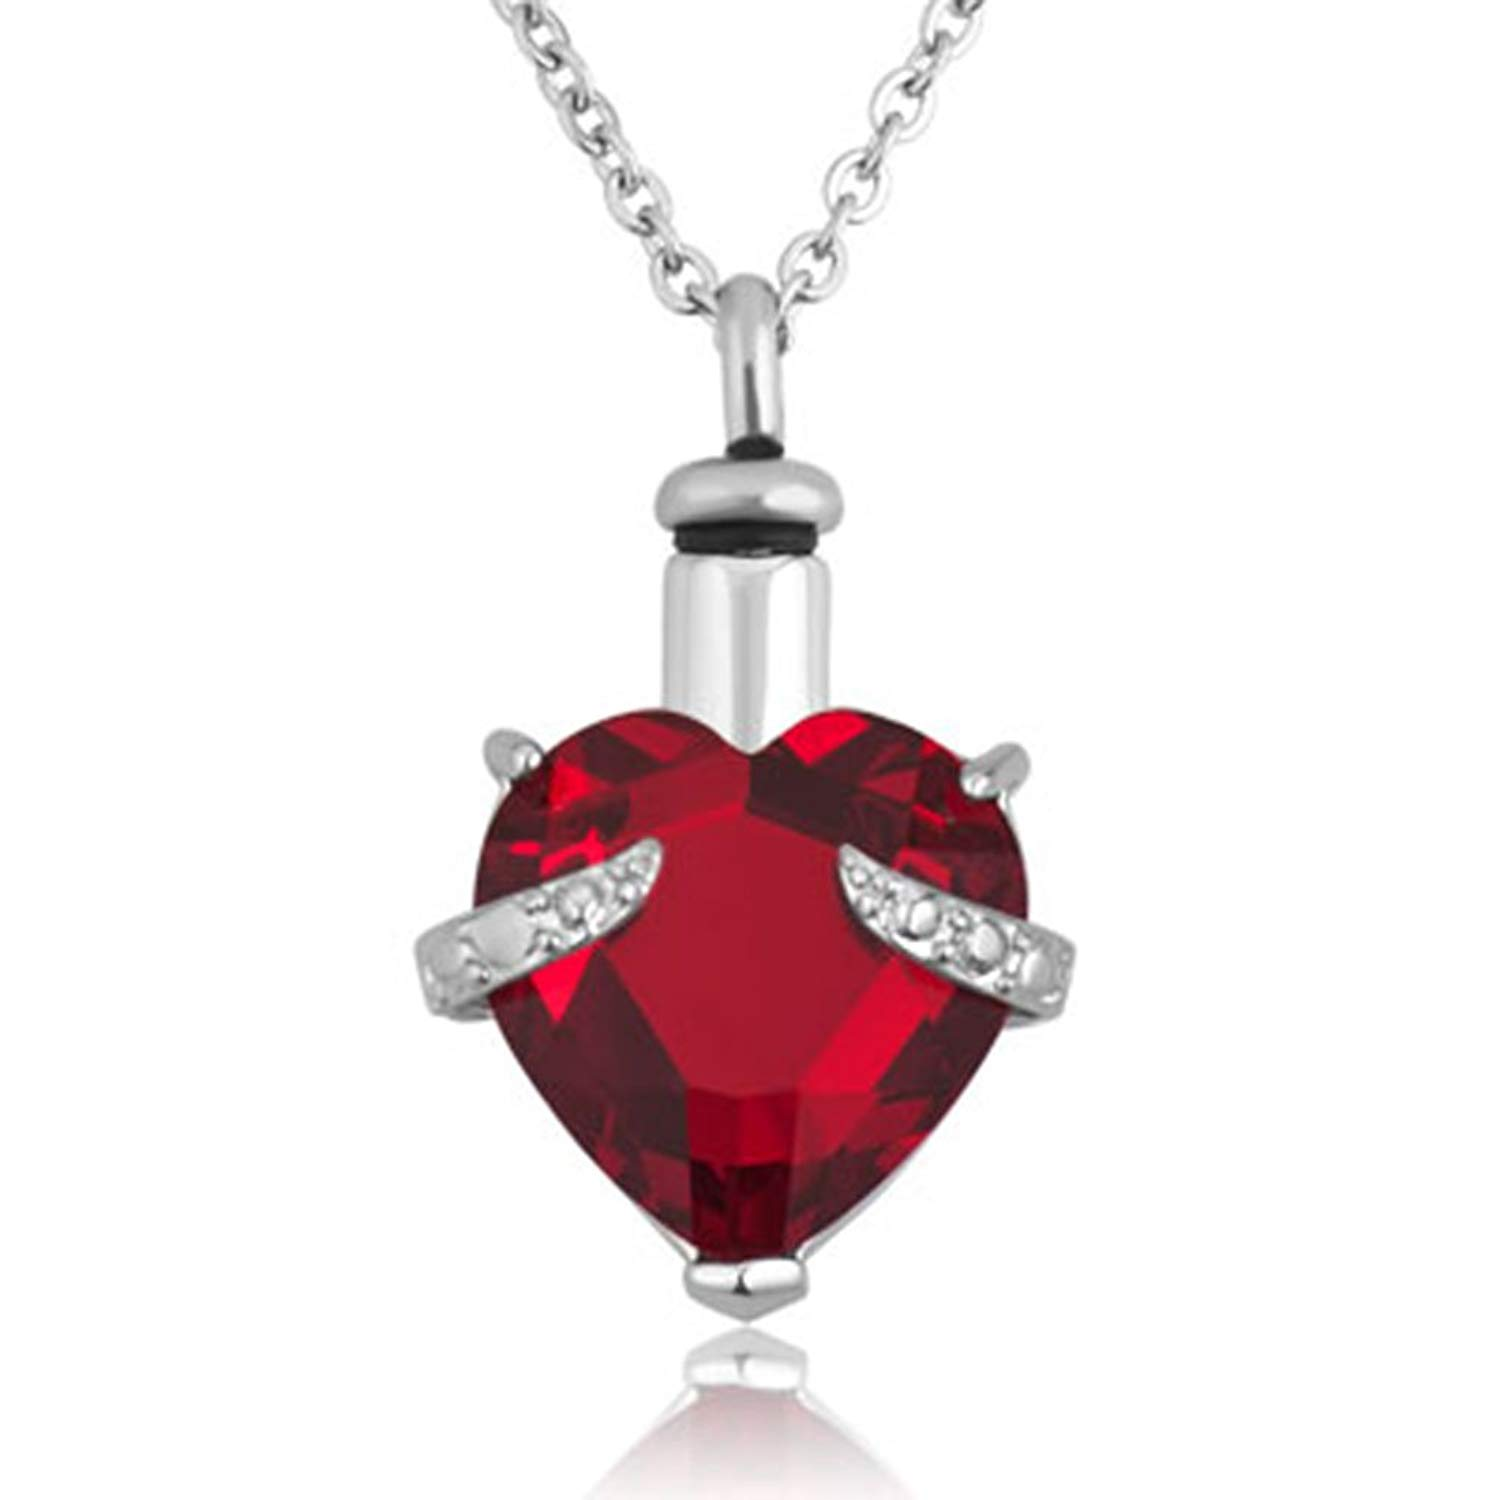 c1ad137a3 Get Quotations · Jesse Ortega 12 Colors Birthstone Cremation Urn Necklace  of Ashes Heart Crystal Keepsake Memorial Stainless Steel